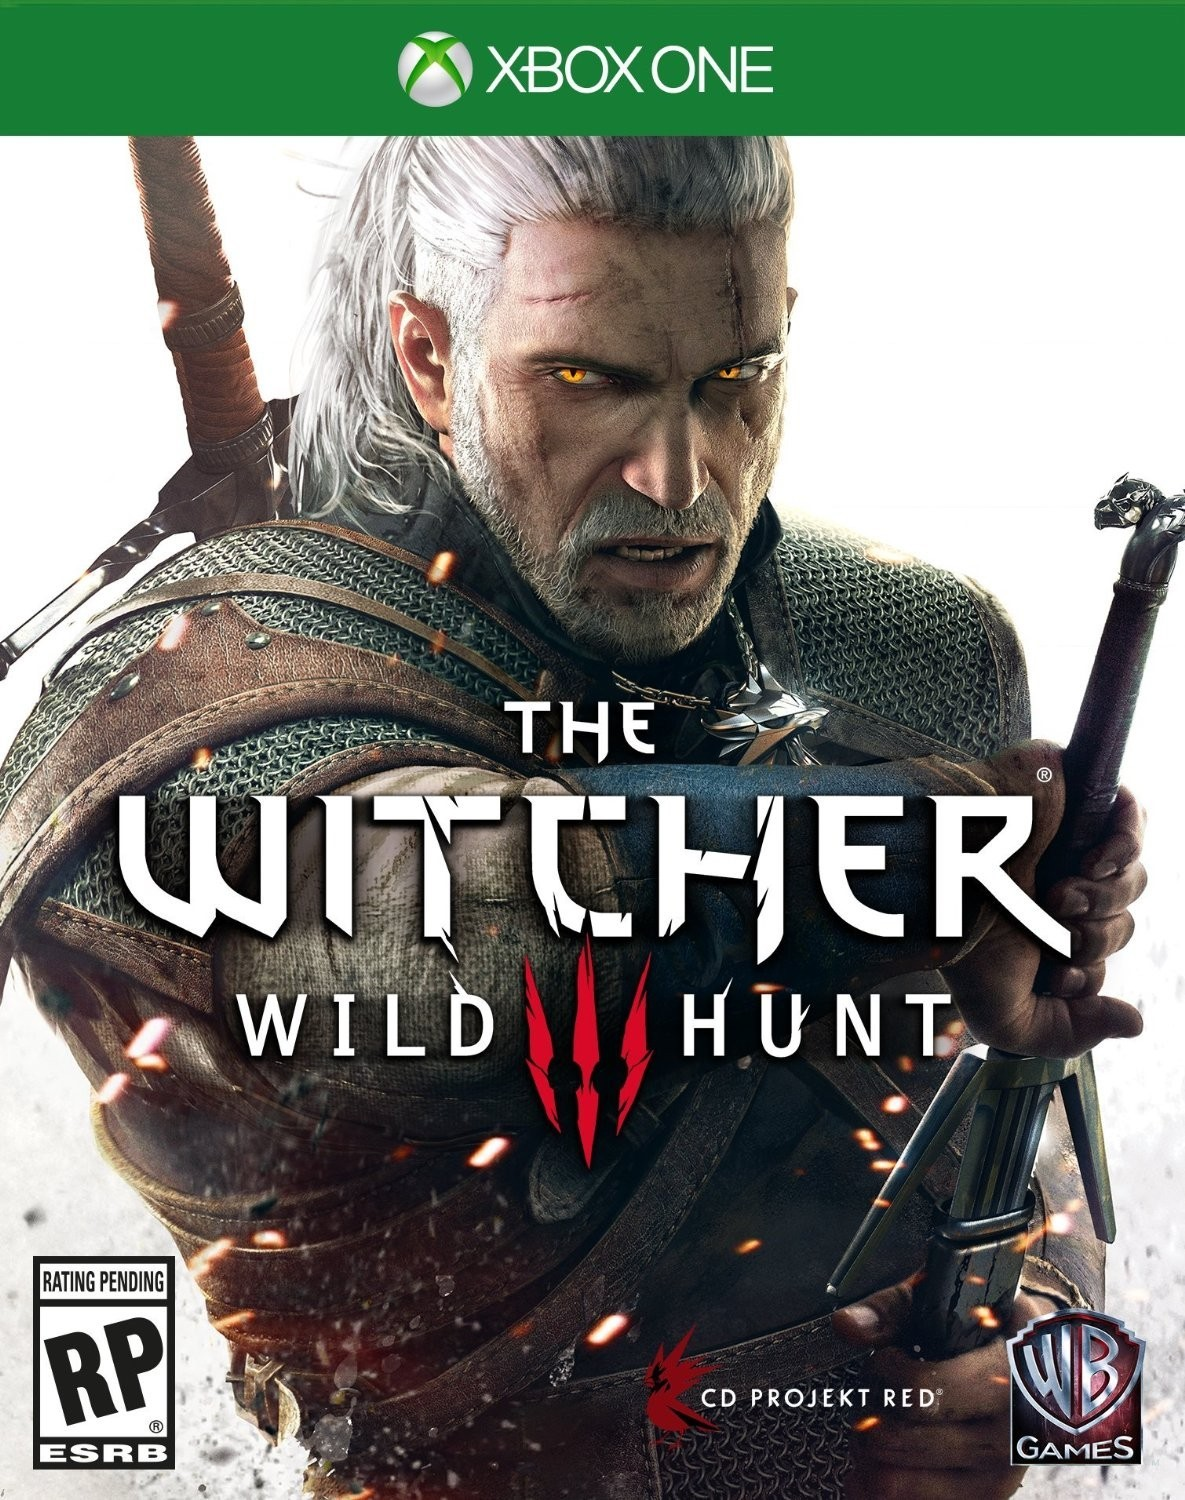 The Witcher 3 Cheats Xbox One